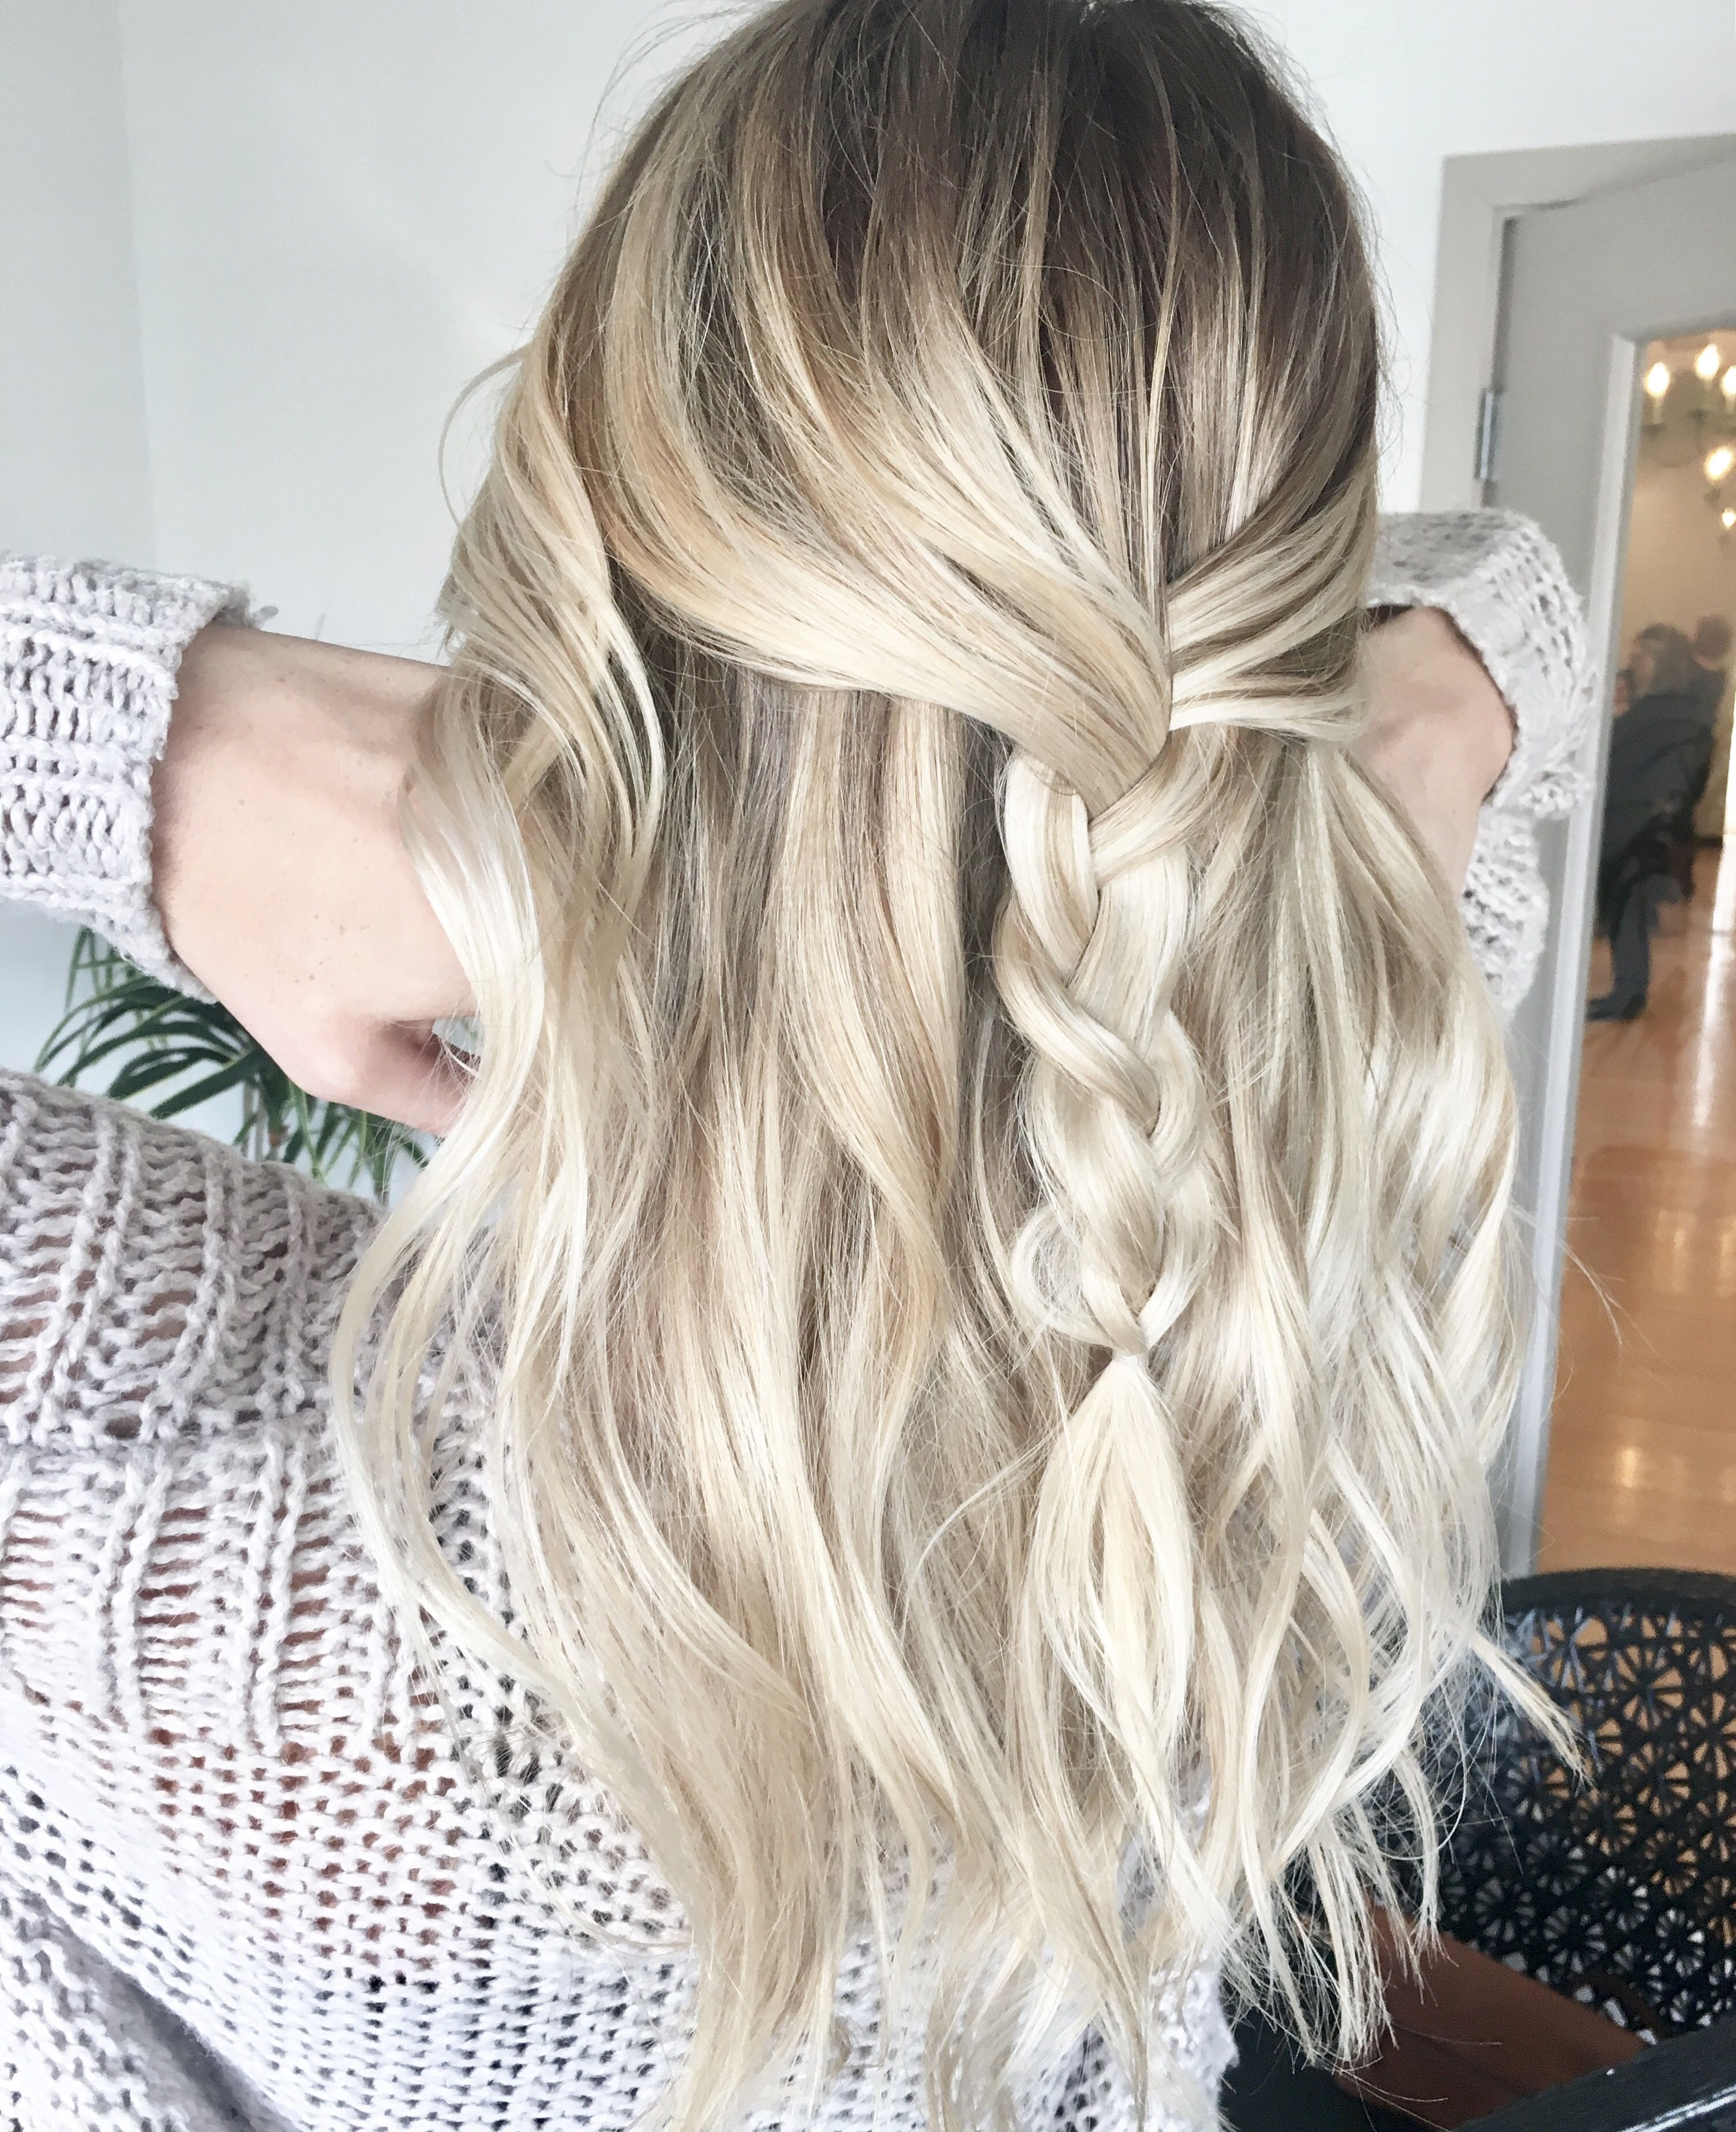 Braid Color Combo Inspiration For Summer Beach Waves Balayage And